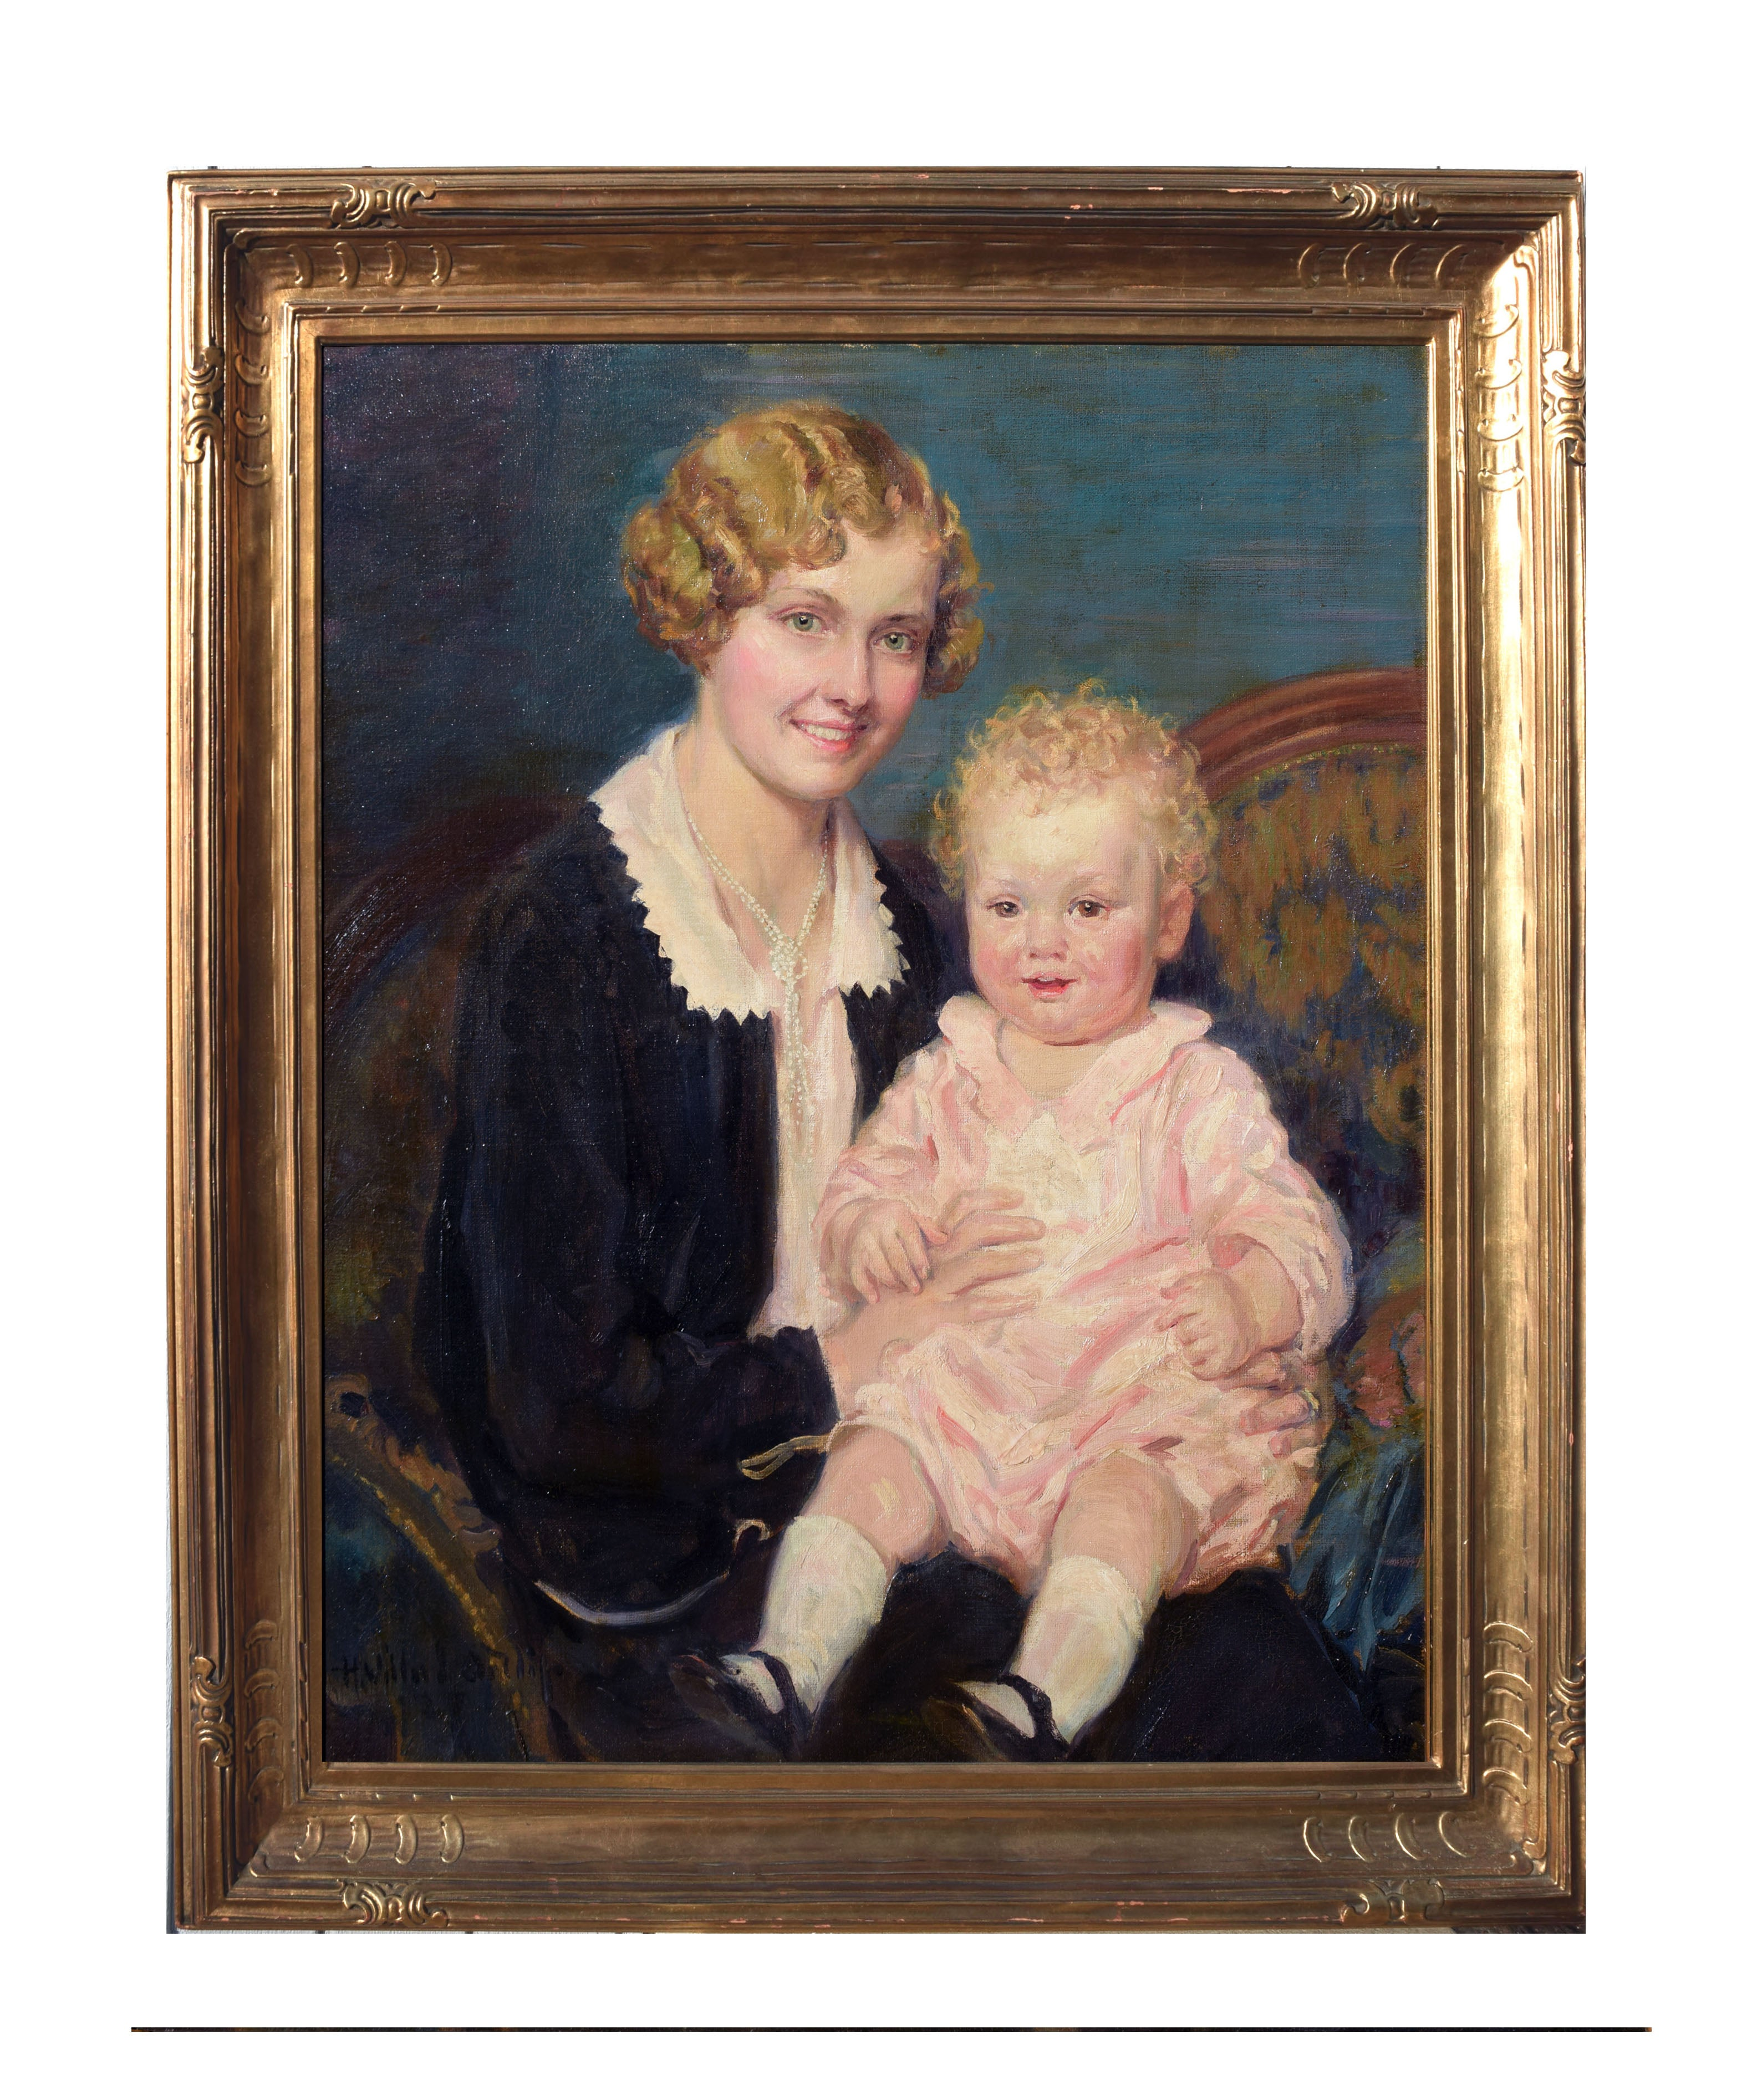 Mother and Child 1920s in a Newcomb Macklin Giltwood frame